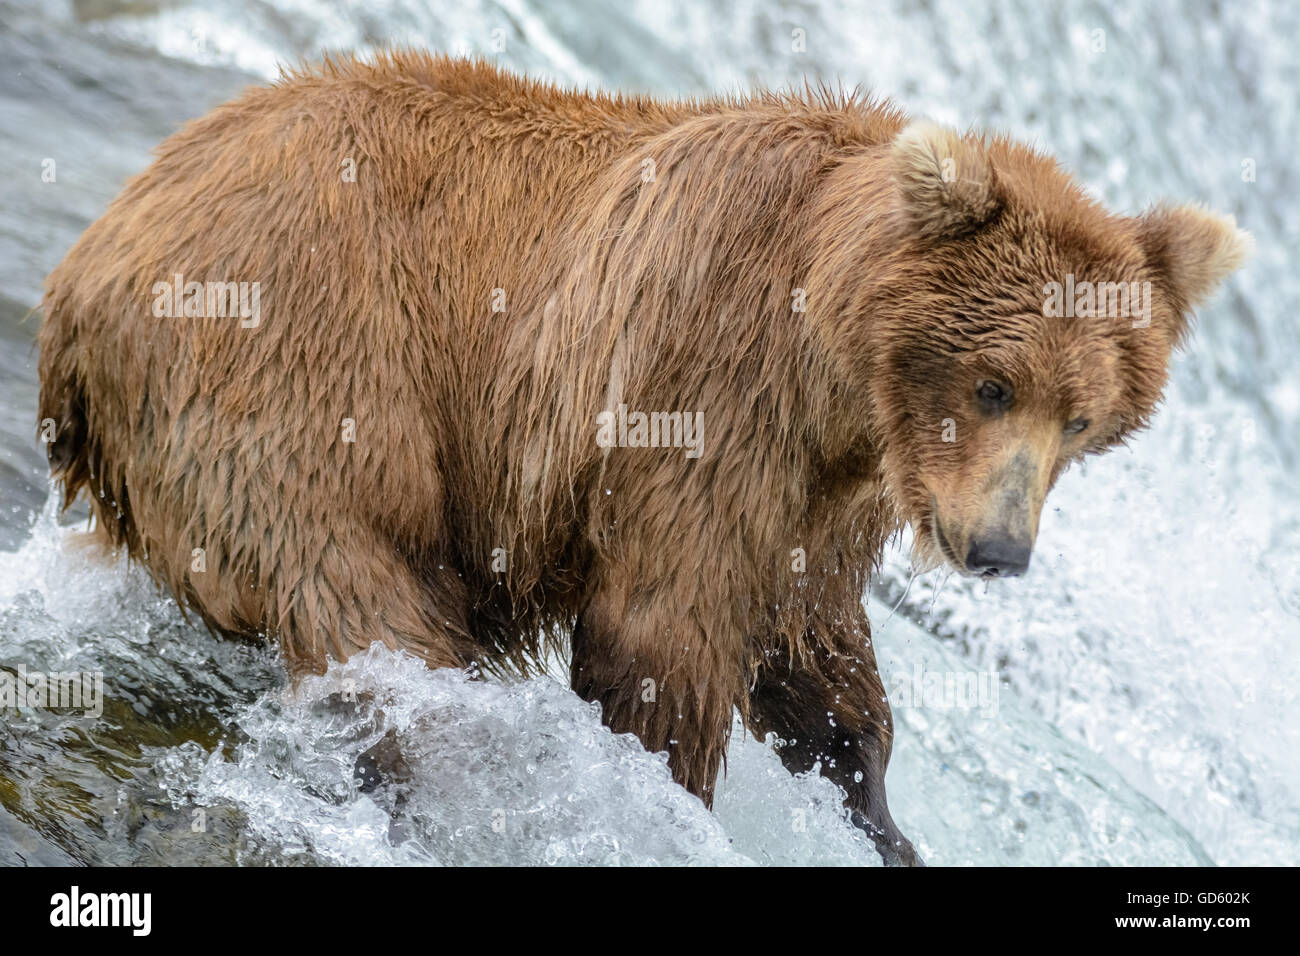 Pêcher le saumon de l'ours grizzli en haut d'une cascade, Brook Falls, Alaska Photo Stock